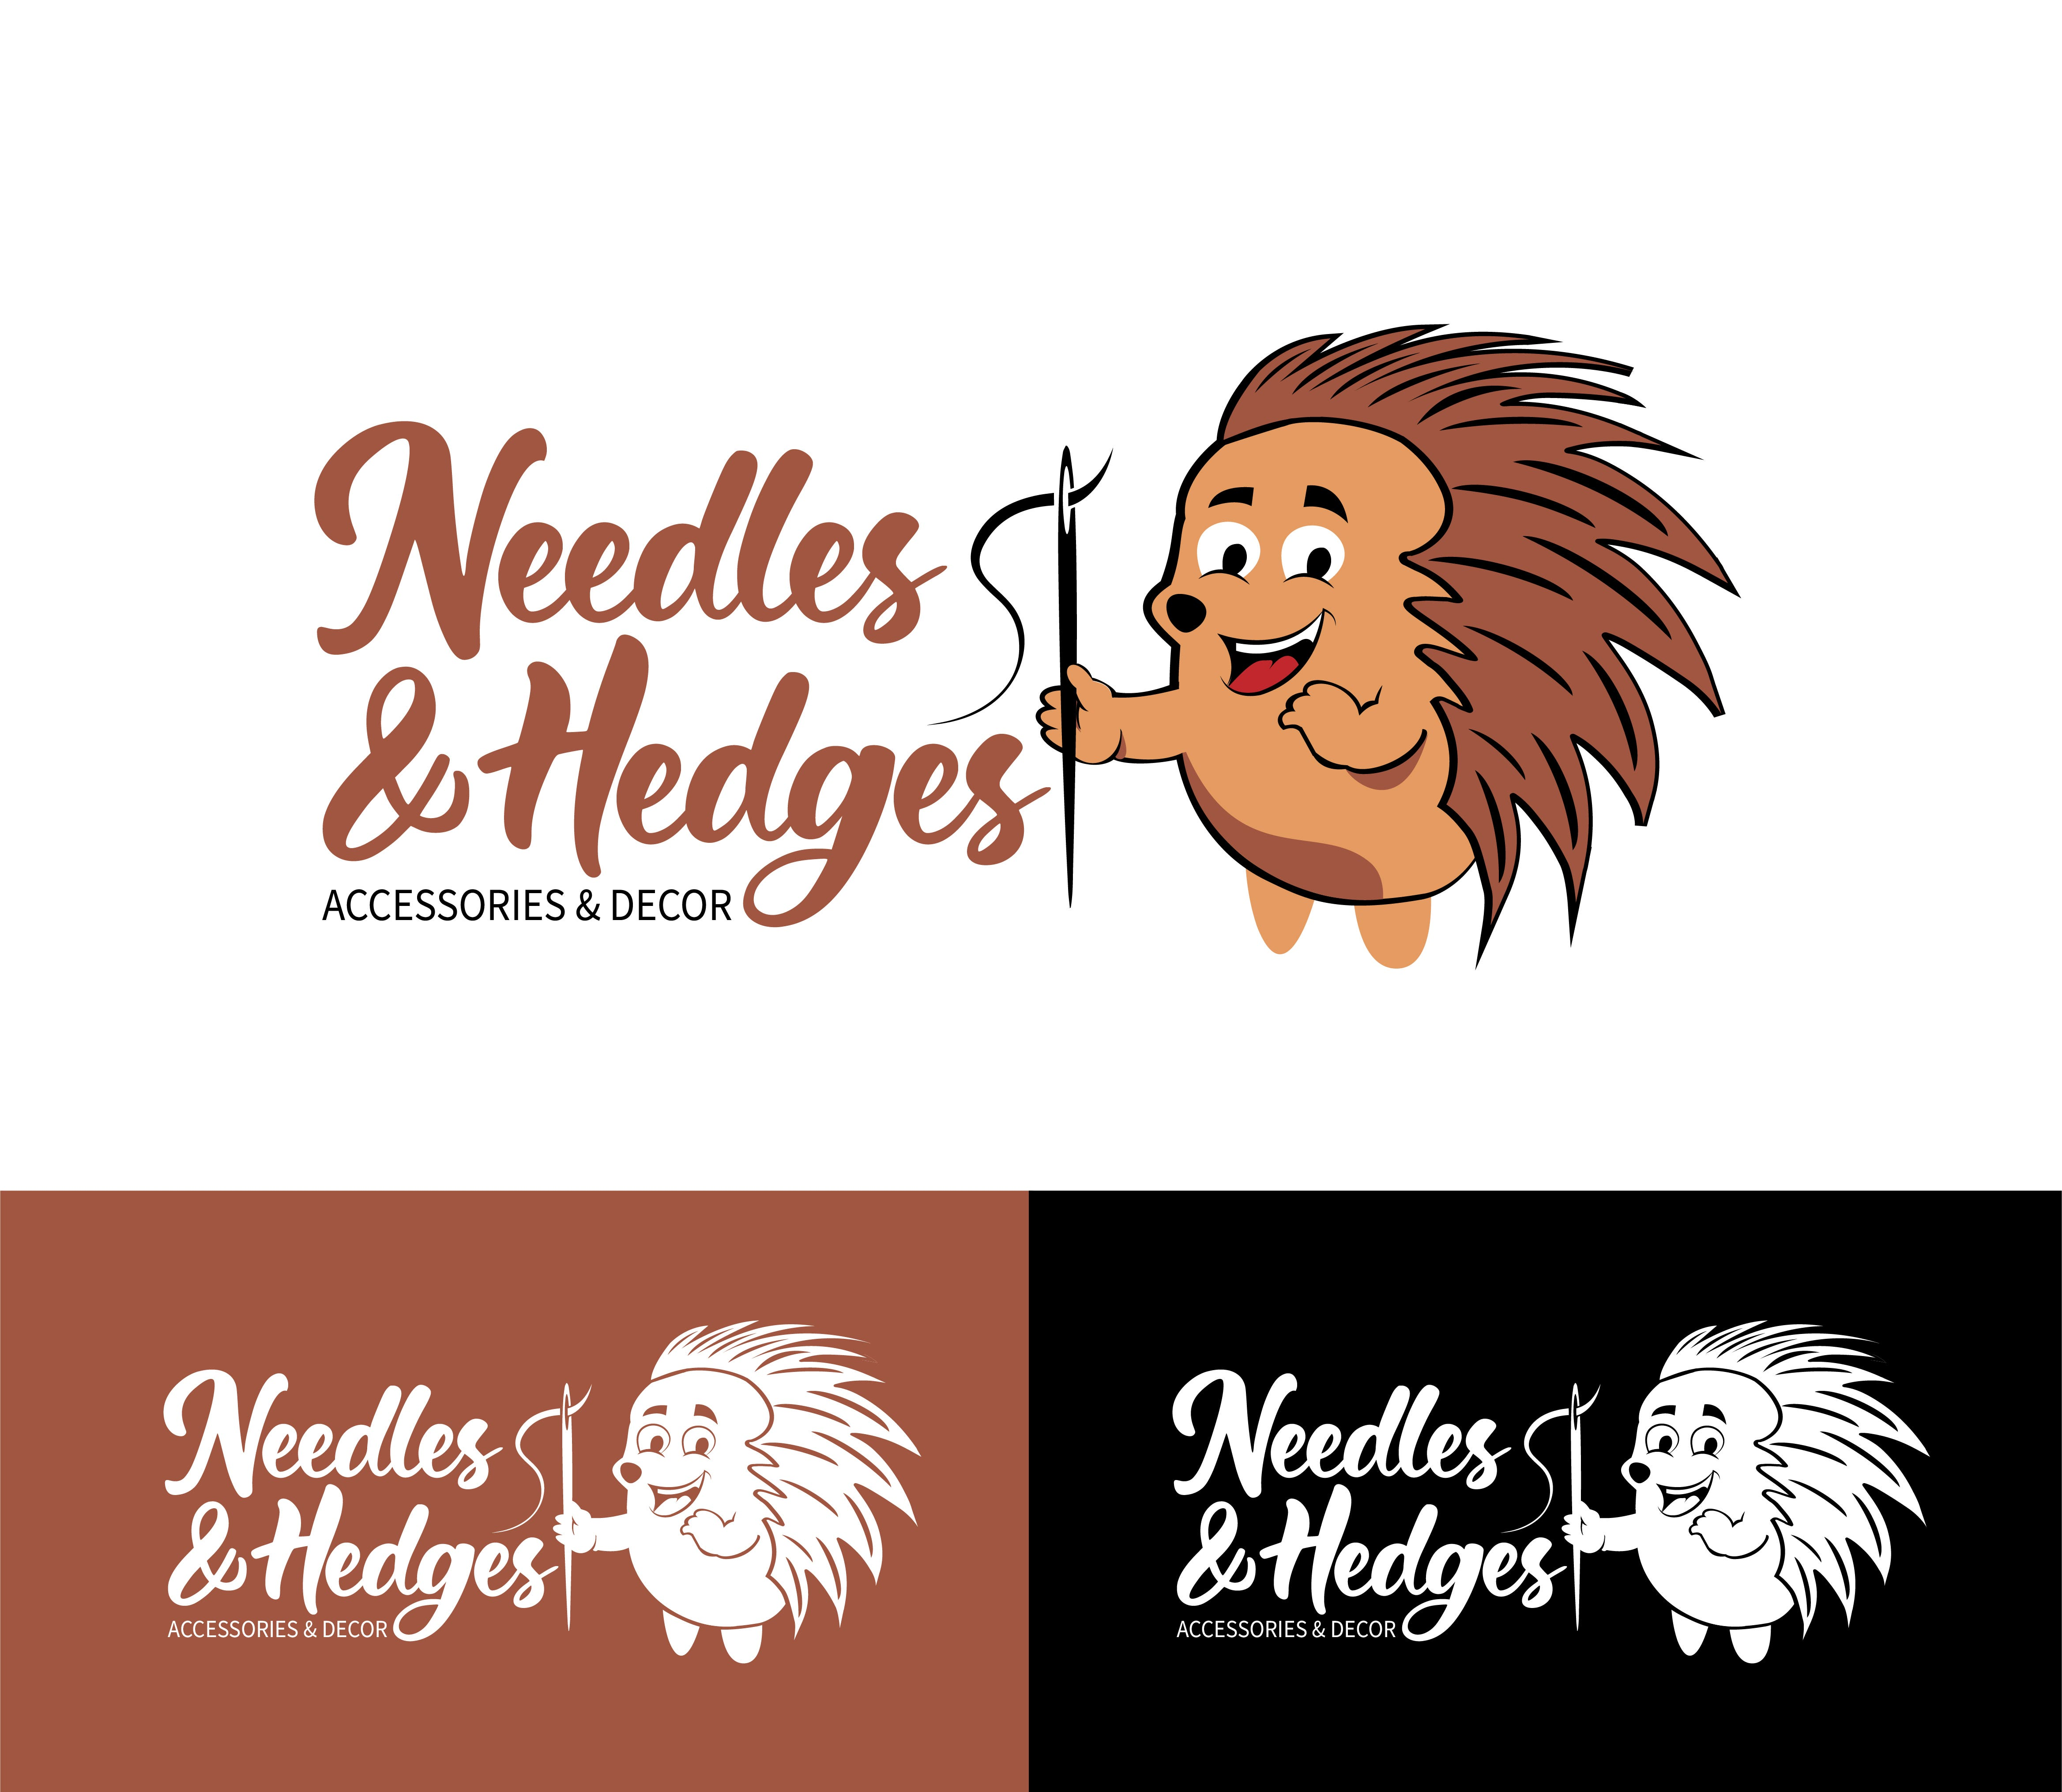 Need a new logo for Needles & Hedges